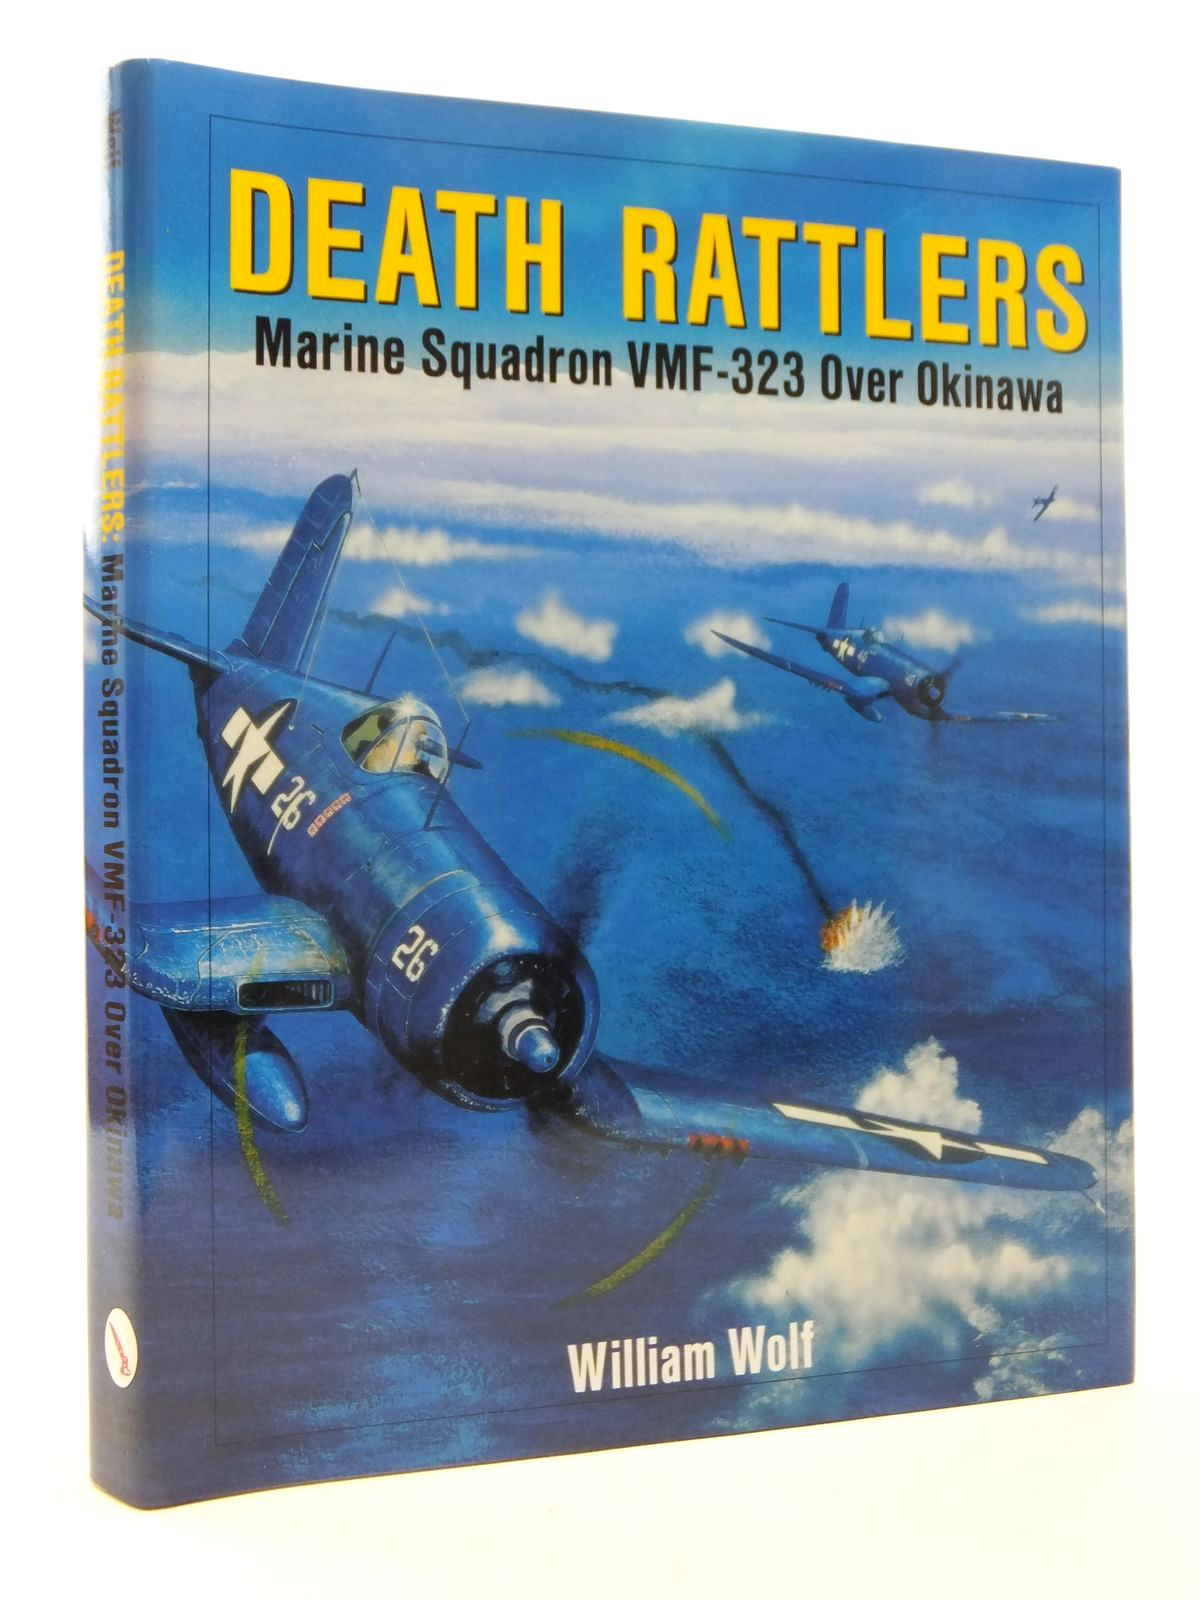 Photo of DEATH RATTLERS MARINE SQUADRON VMF-323 OVER OKINAWA written by Wolf, William published by Schiffer Military History (STOCK CODE: 1610021)  for sale by Stella & Rose's Books